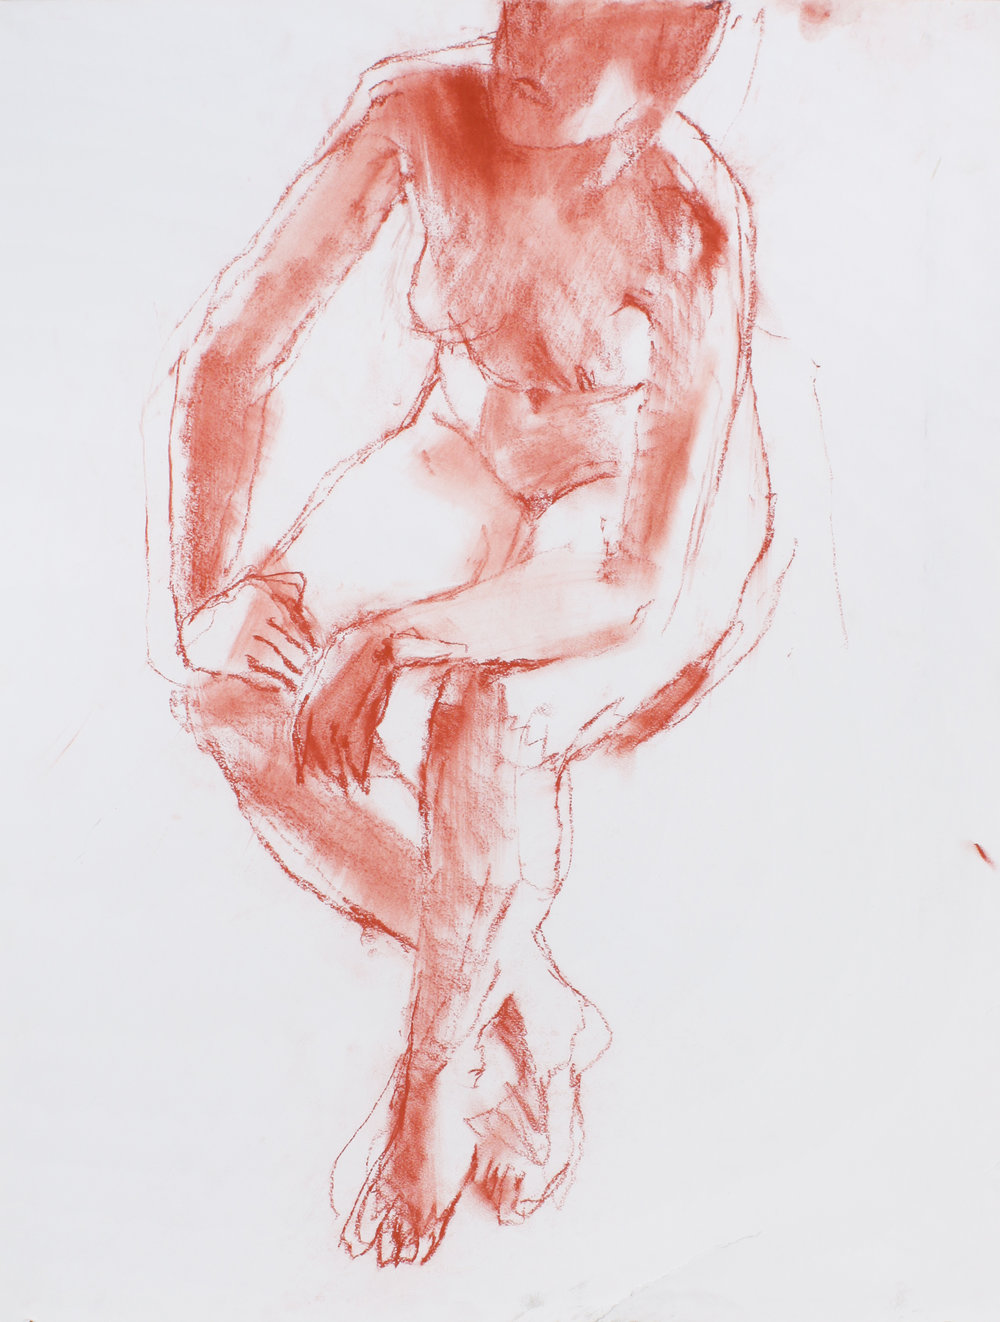 Seated Nude with Legs Crossed Near Ankles